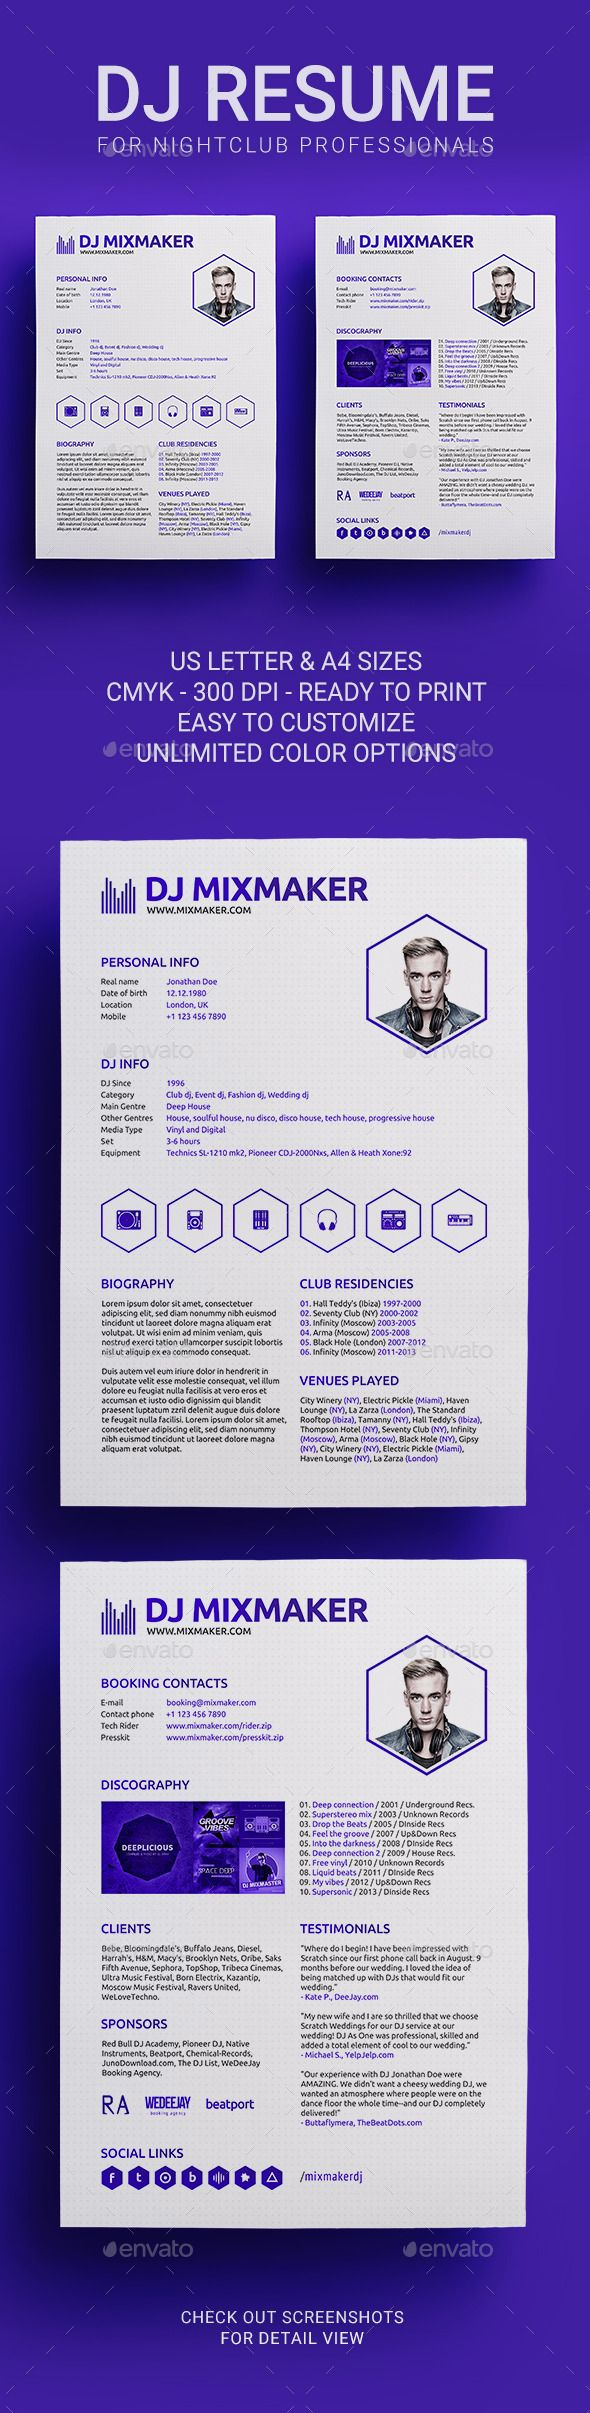 1000 images about dj press kit and dj resume templates on